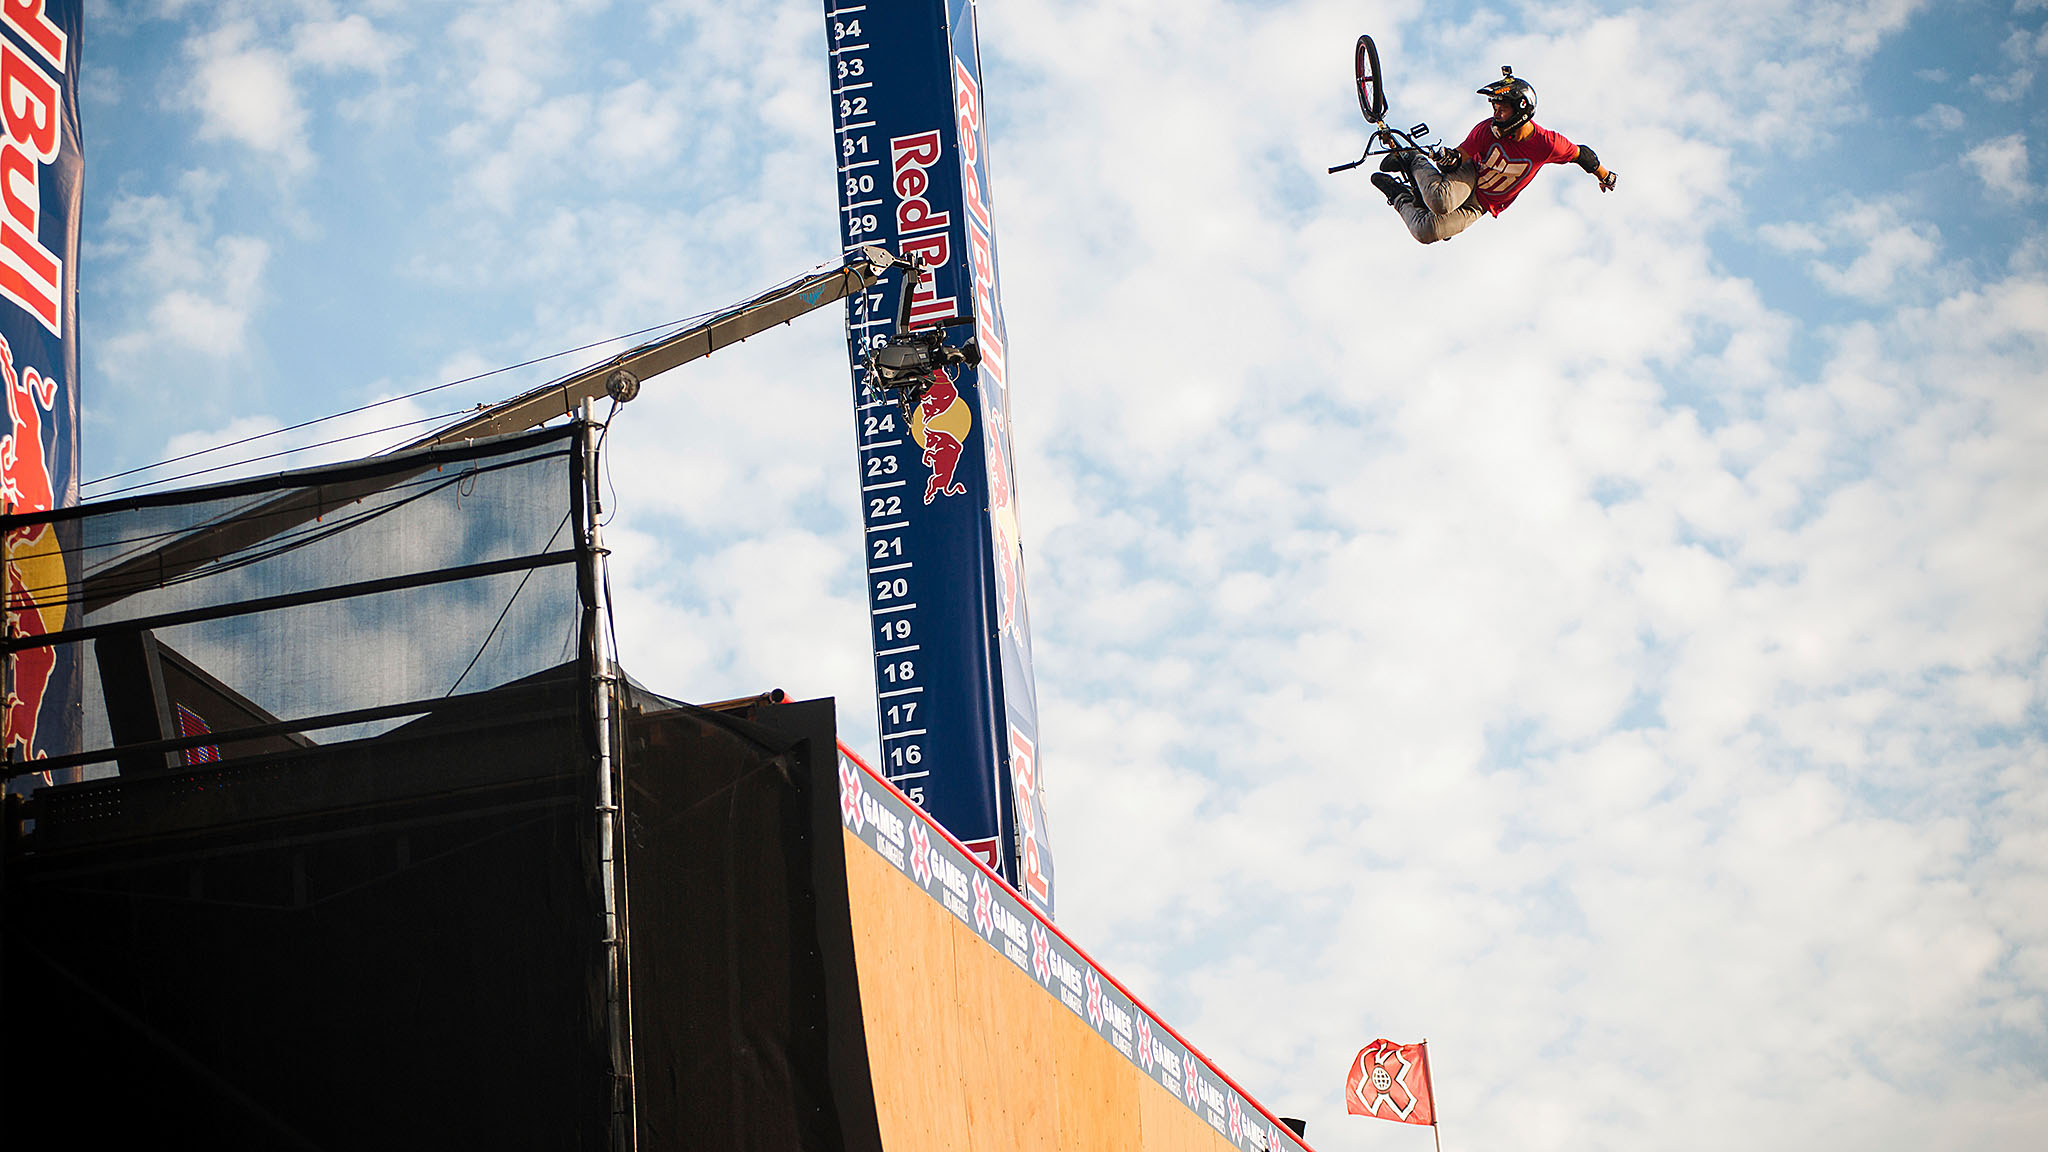 Morgan Wade won his first X Games gold in BMX Big Air last year in Los Angeles.